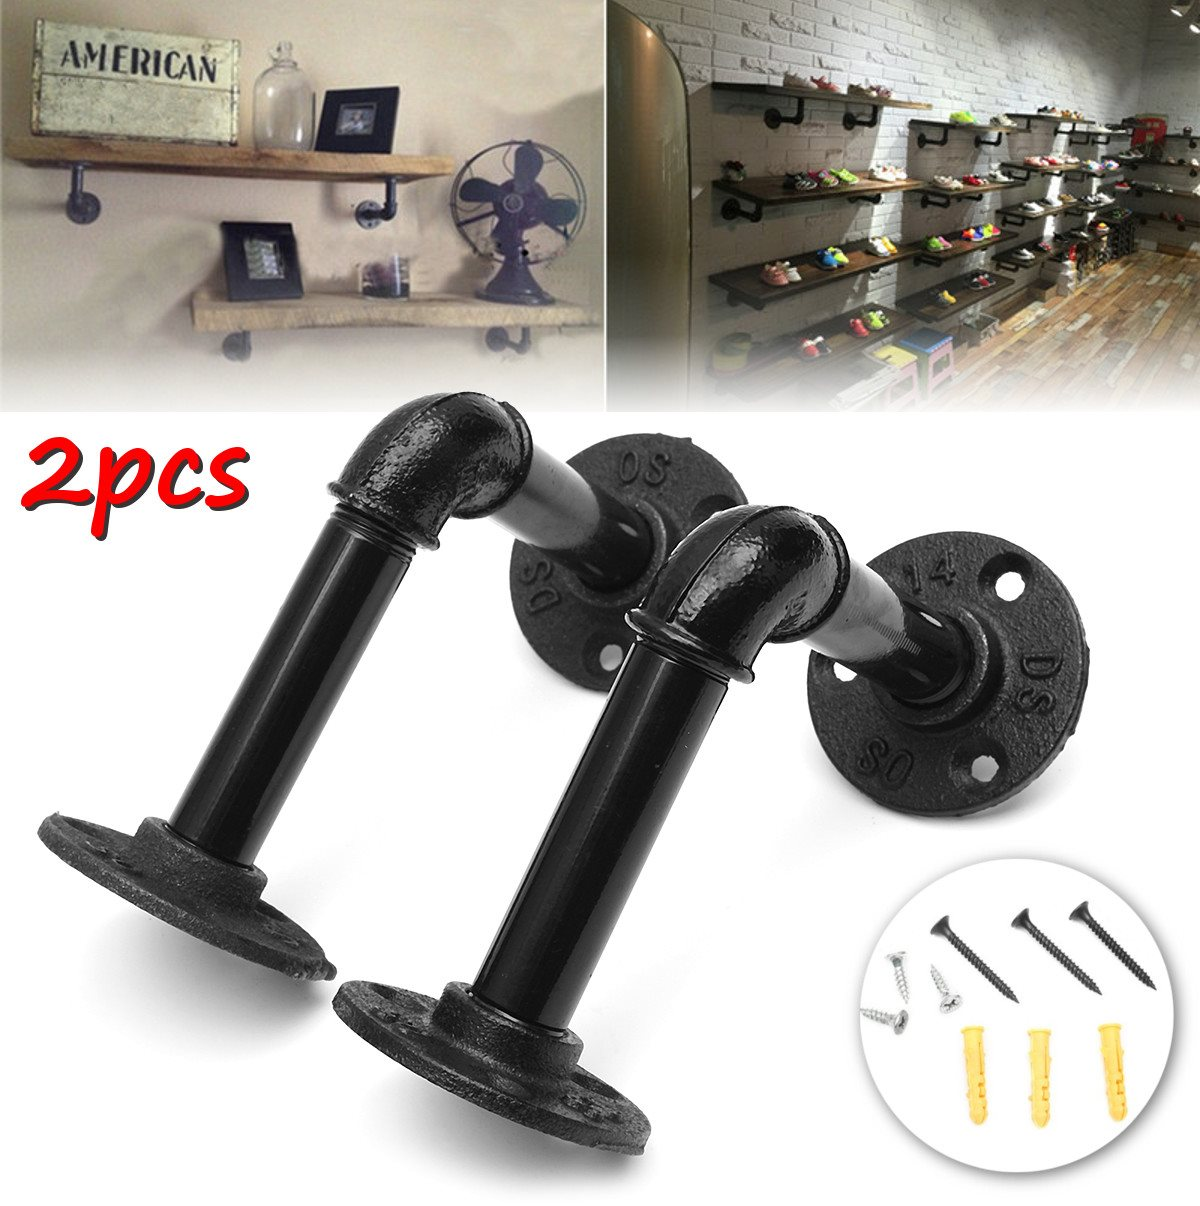 pipe shelf bracket holder 2pcs set industrial with screws. Black Bedroom Furniture Sets. Home Design Ideas